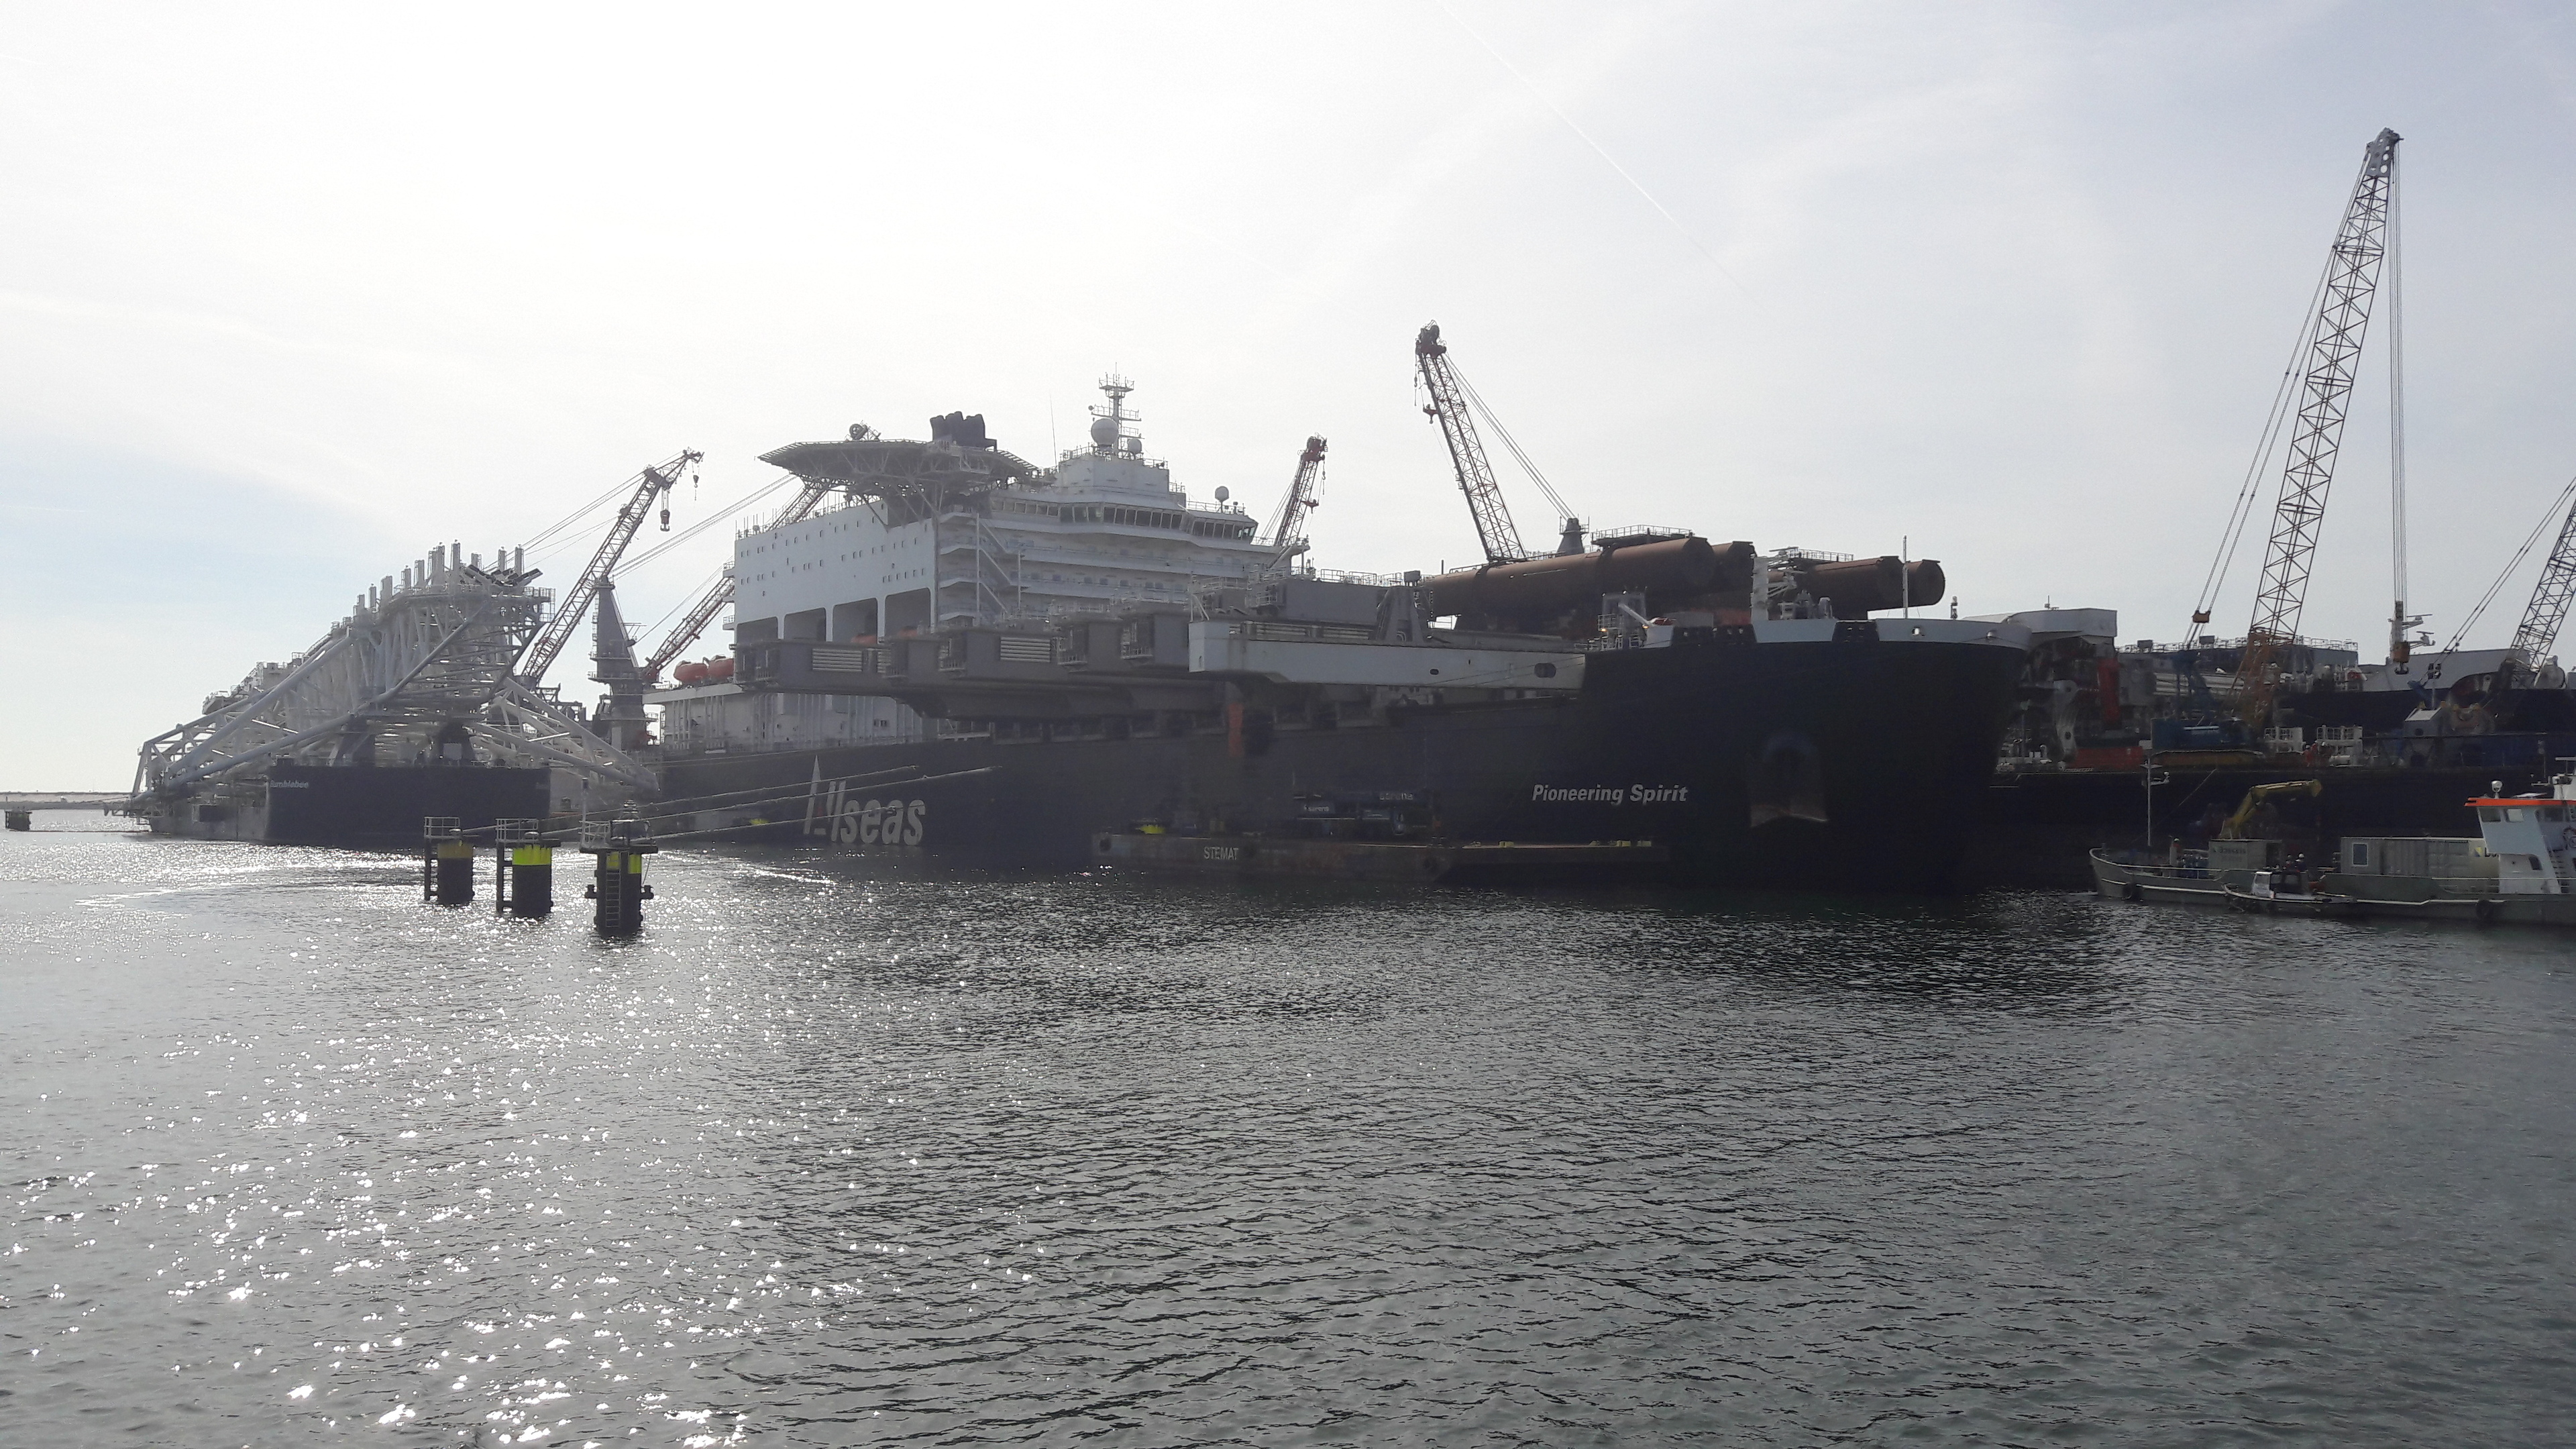 Interview: World's biggest ship will lift Brent Delta, just